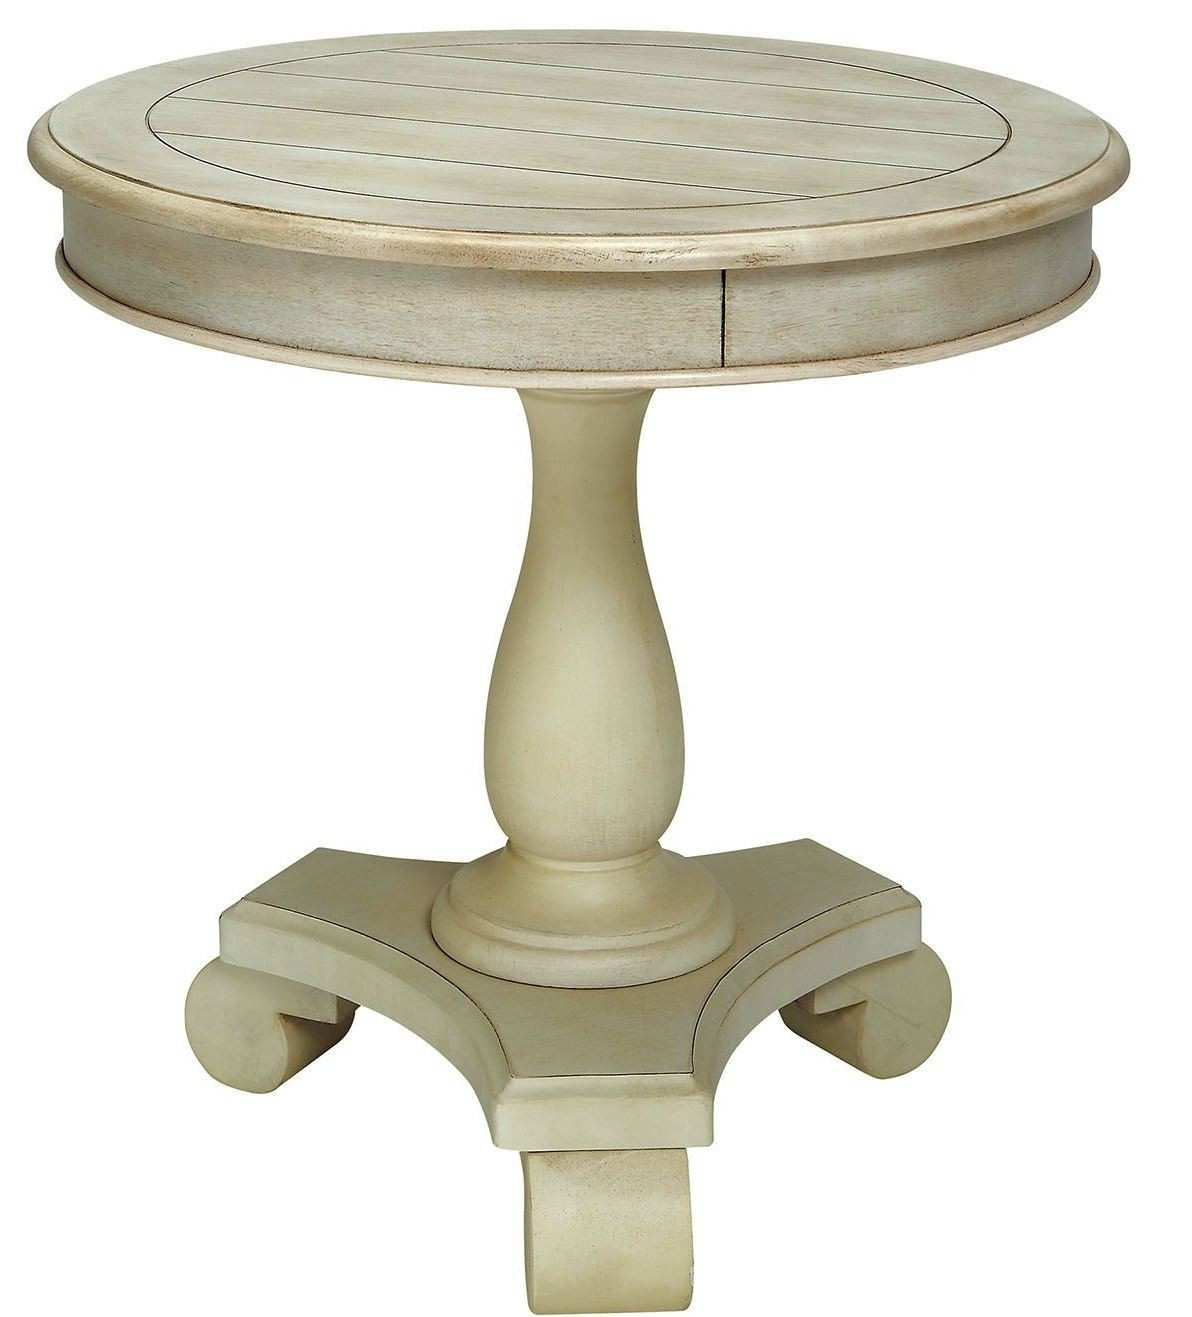 stunning white round accent table for painted mahogany wood newest kalea antique from furniture tipton uma knotty pine desk pottery barn industrial coffee gold and glass unique